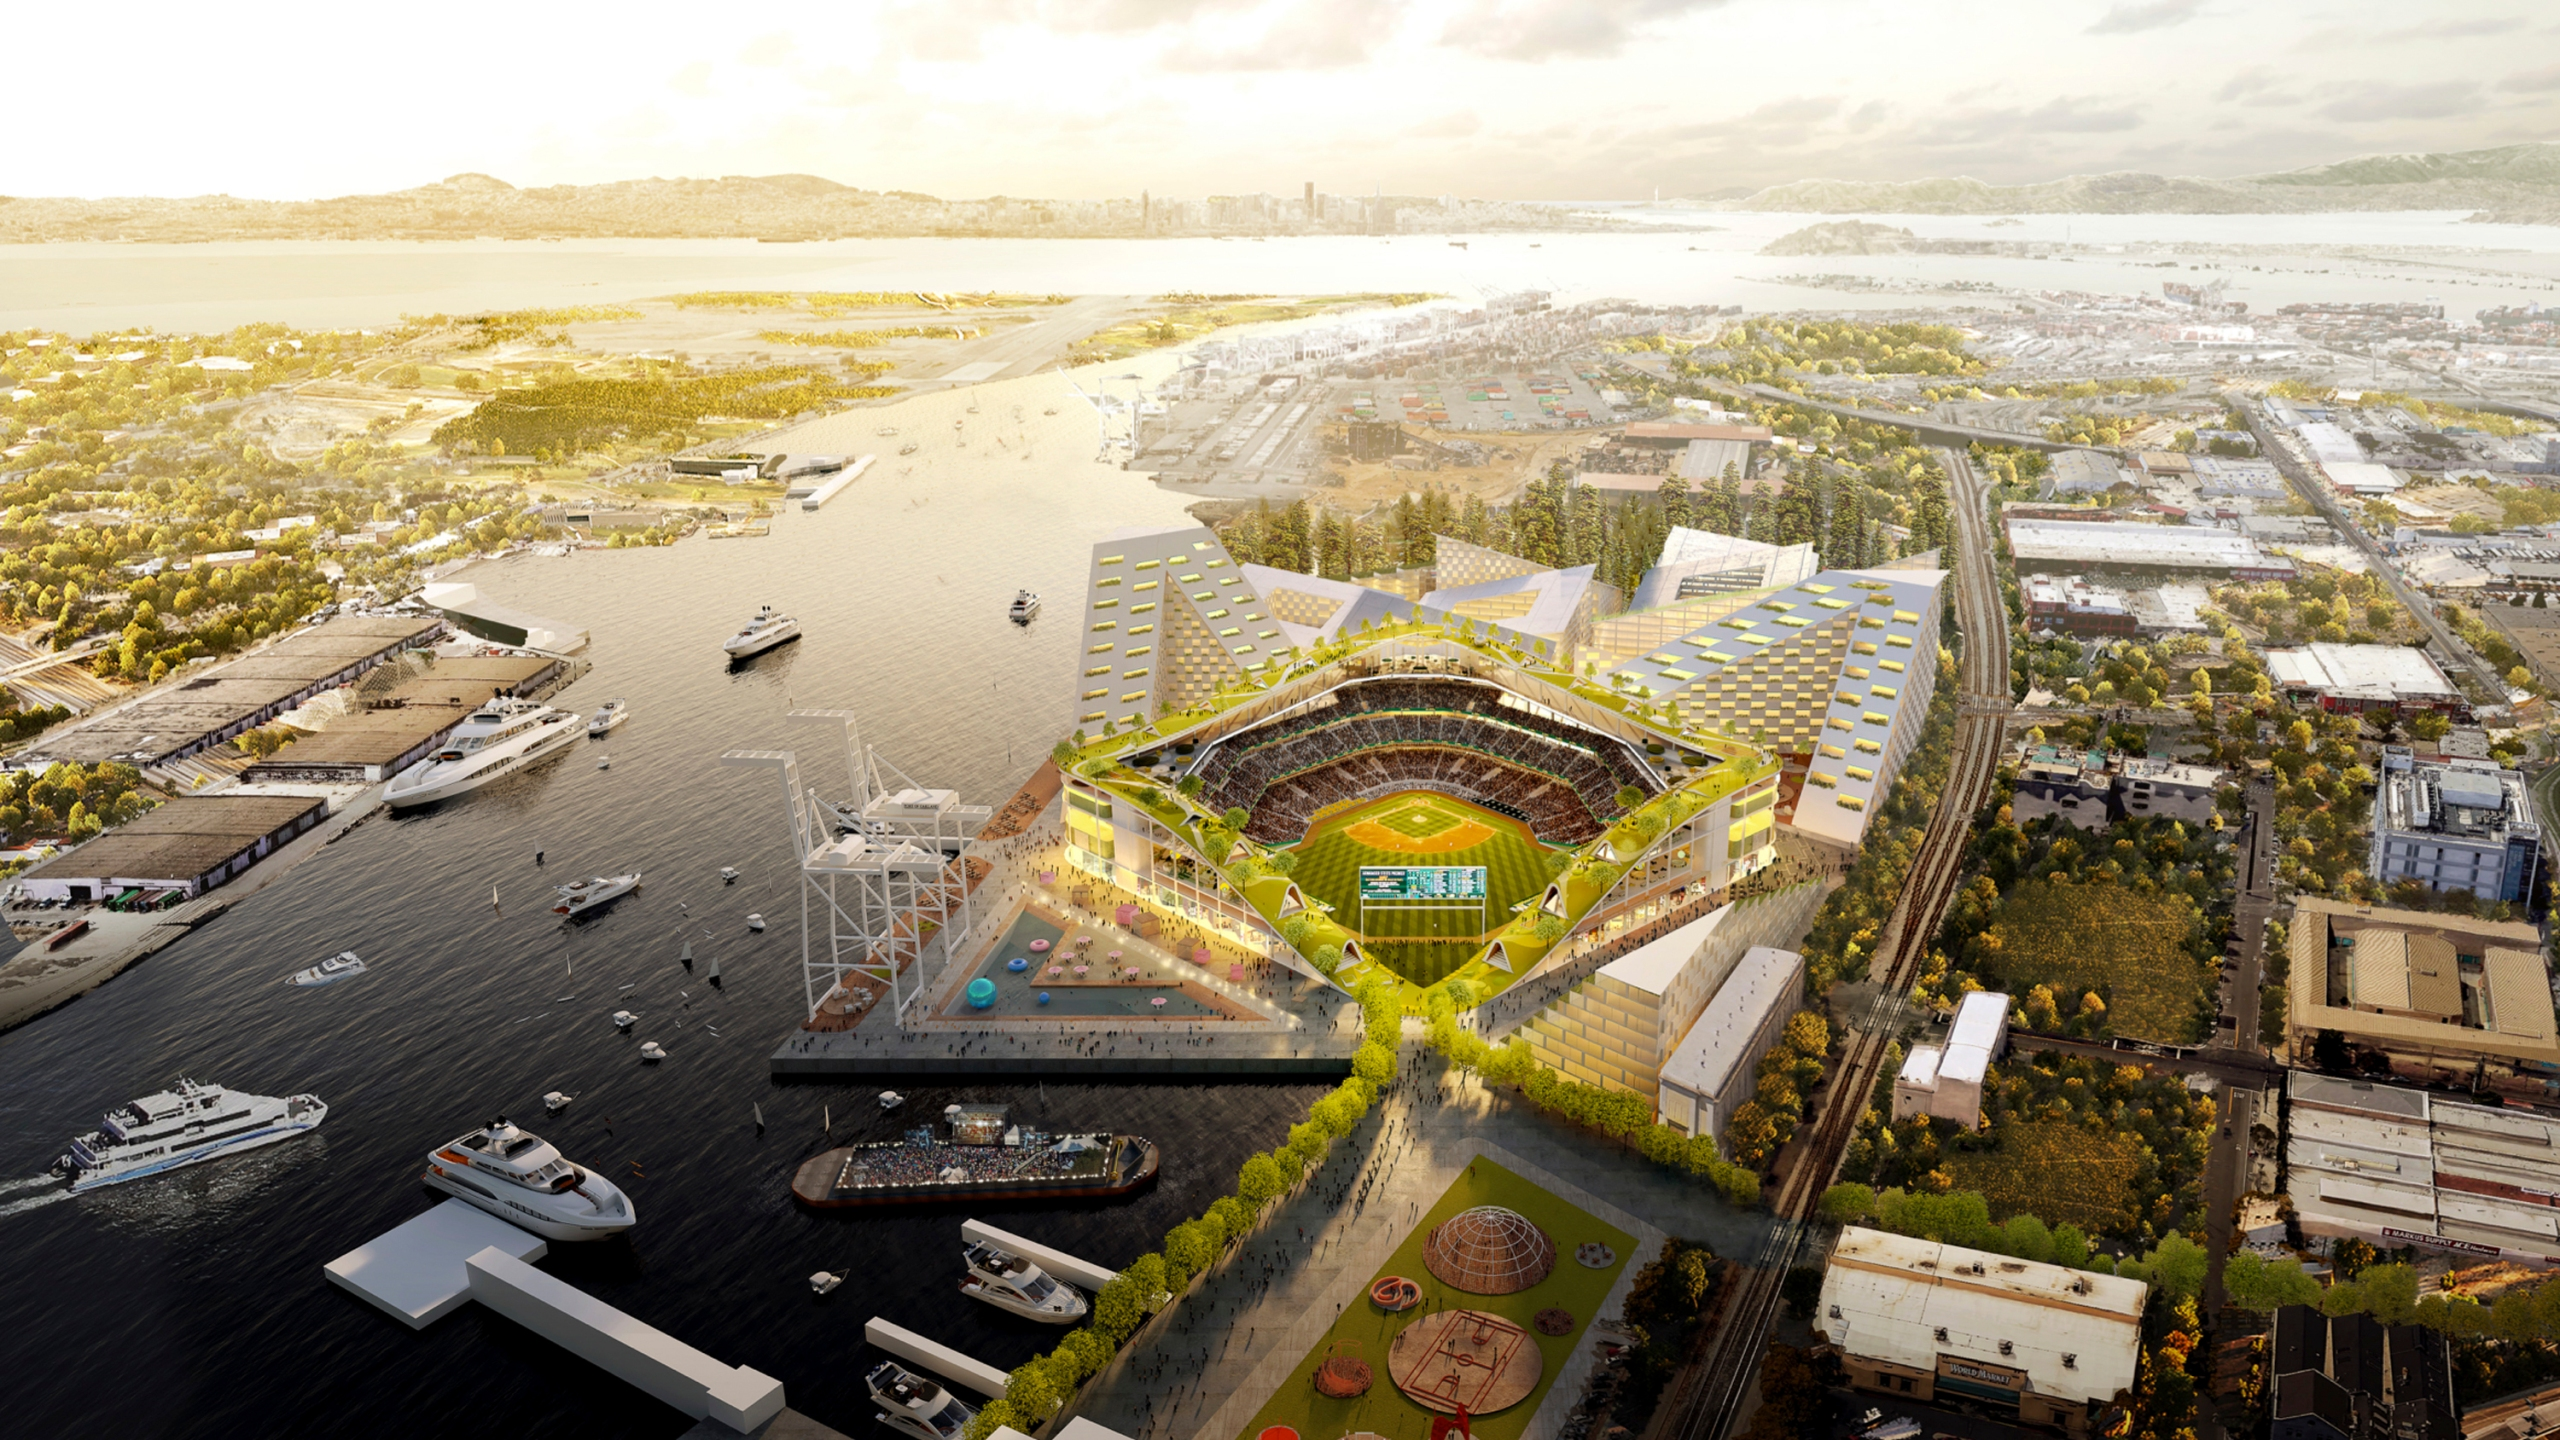 This rendering provided by the Oakland Athletics and BIG - Bjarke Ingels Group shows an elevated view of the baseball club's proposed new at Howard Terminal in Oakland. The Oakland City Council approved preliminary terms for a new $12 billion waterfront ballpark project for the team on July 20, 2021, but it's not clear if the 6-1 vote will be enough to keep the A's at the negotiating table instead of leaving the city. (Courtesy of BIG - Bjarke Ingels Group/Oakland Athletics via AP, Fil